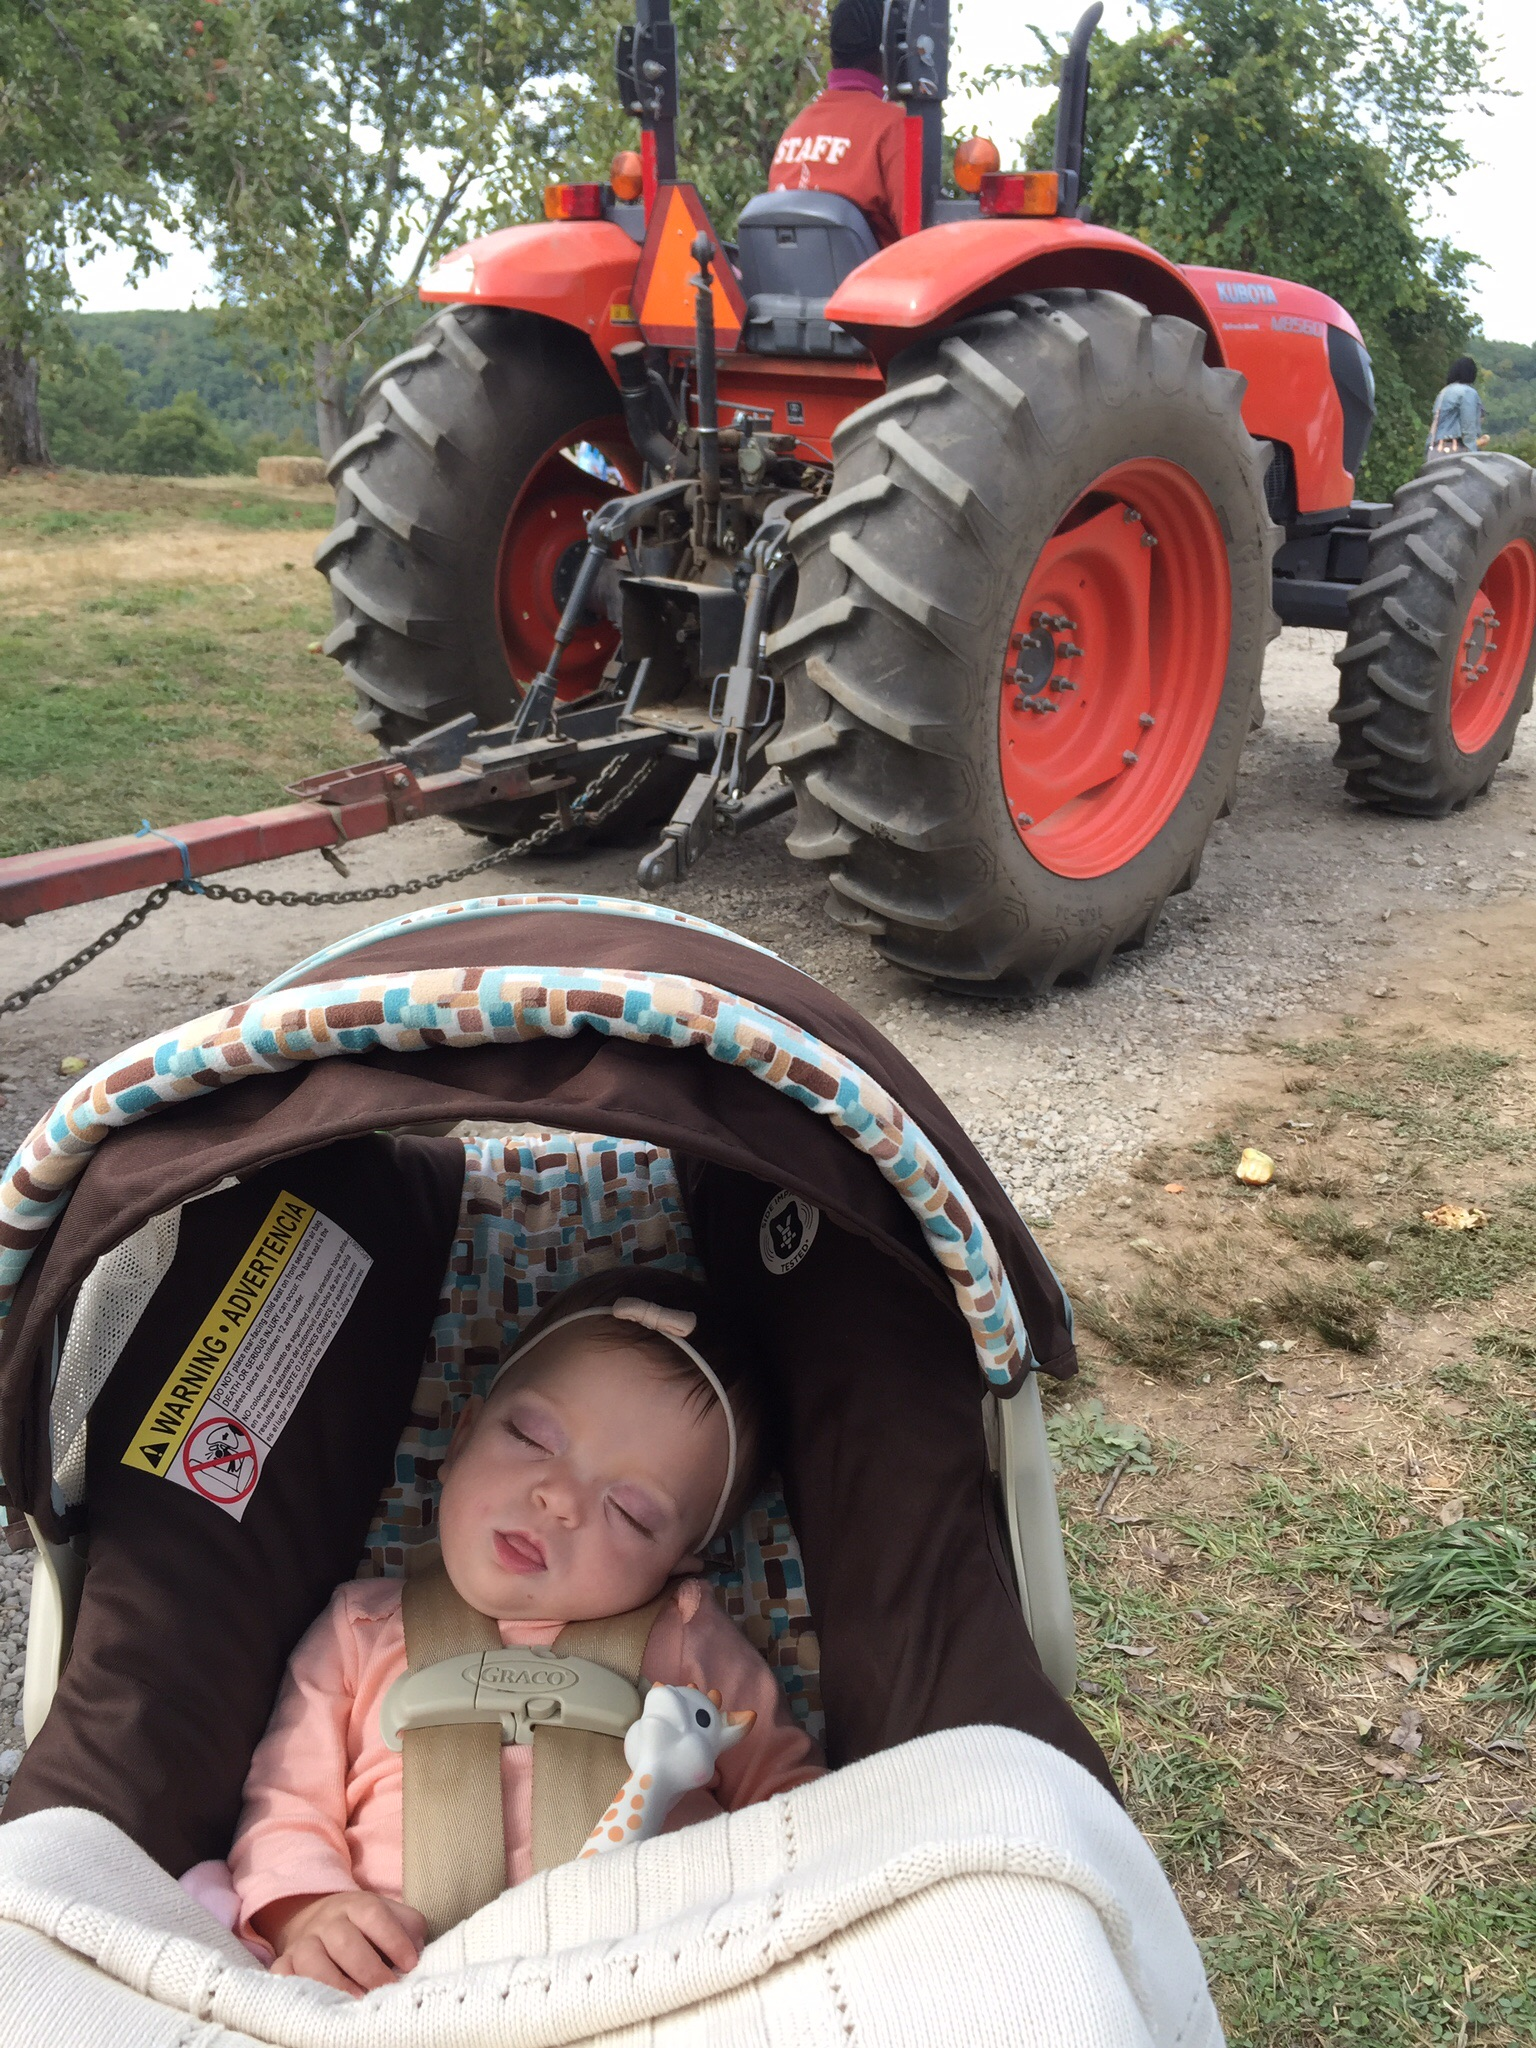 Not even a tractor driving by could wake this girl up!